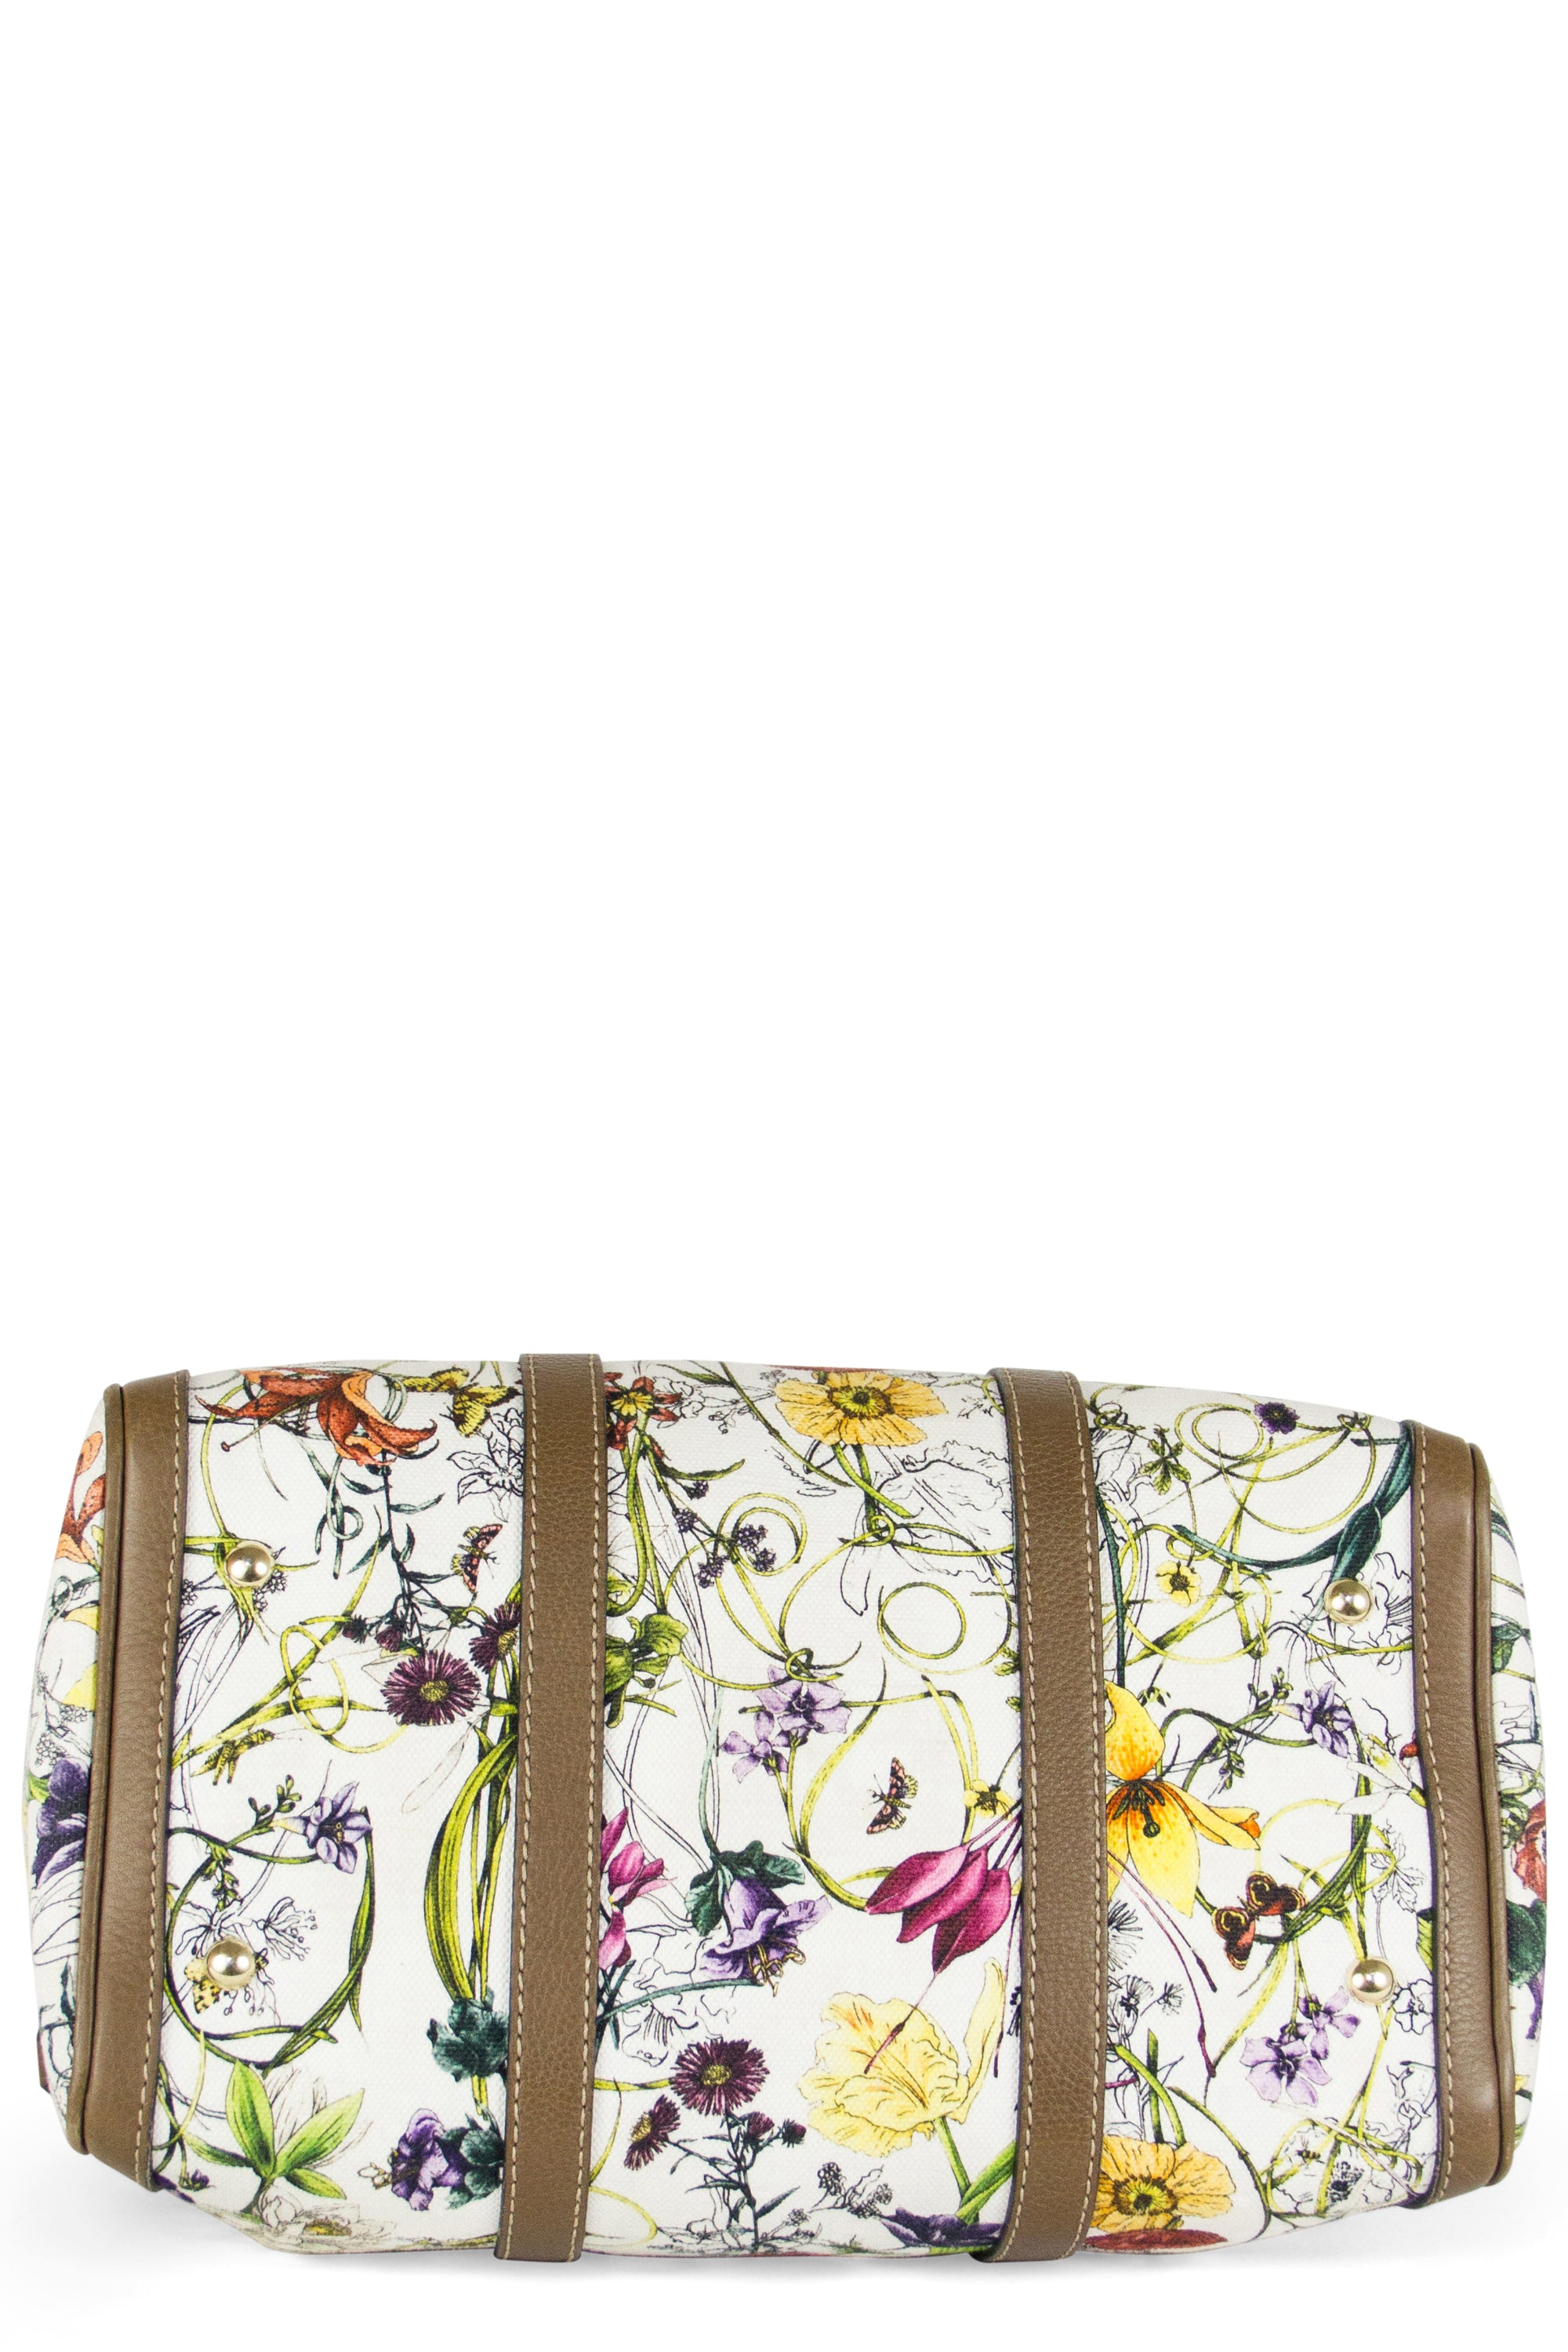 GUCCI Floral Boston Bag